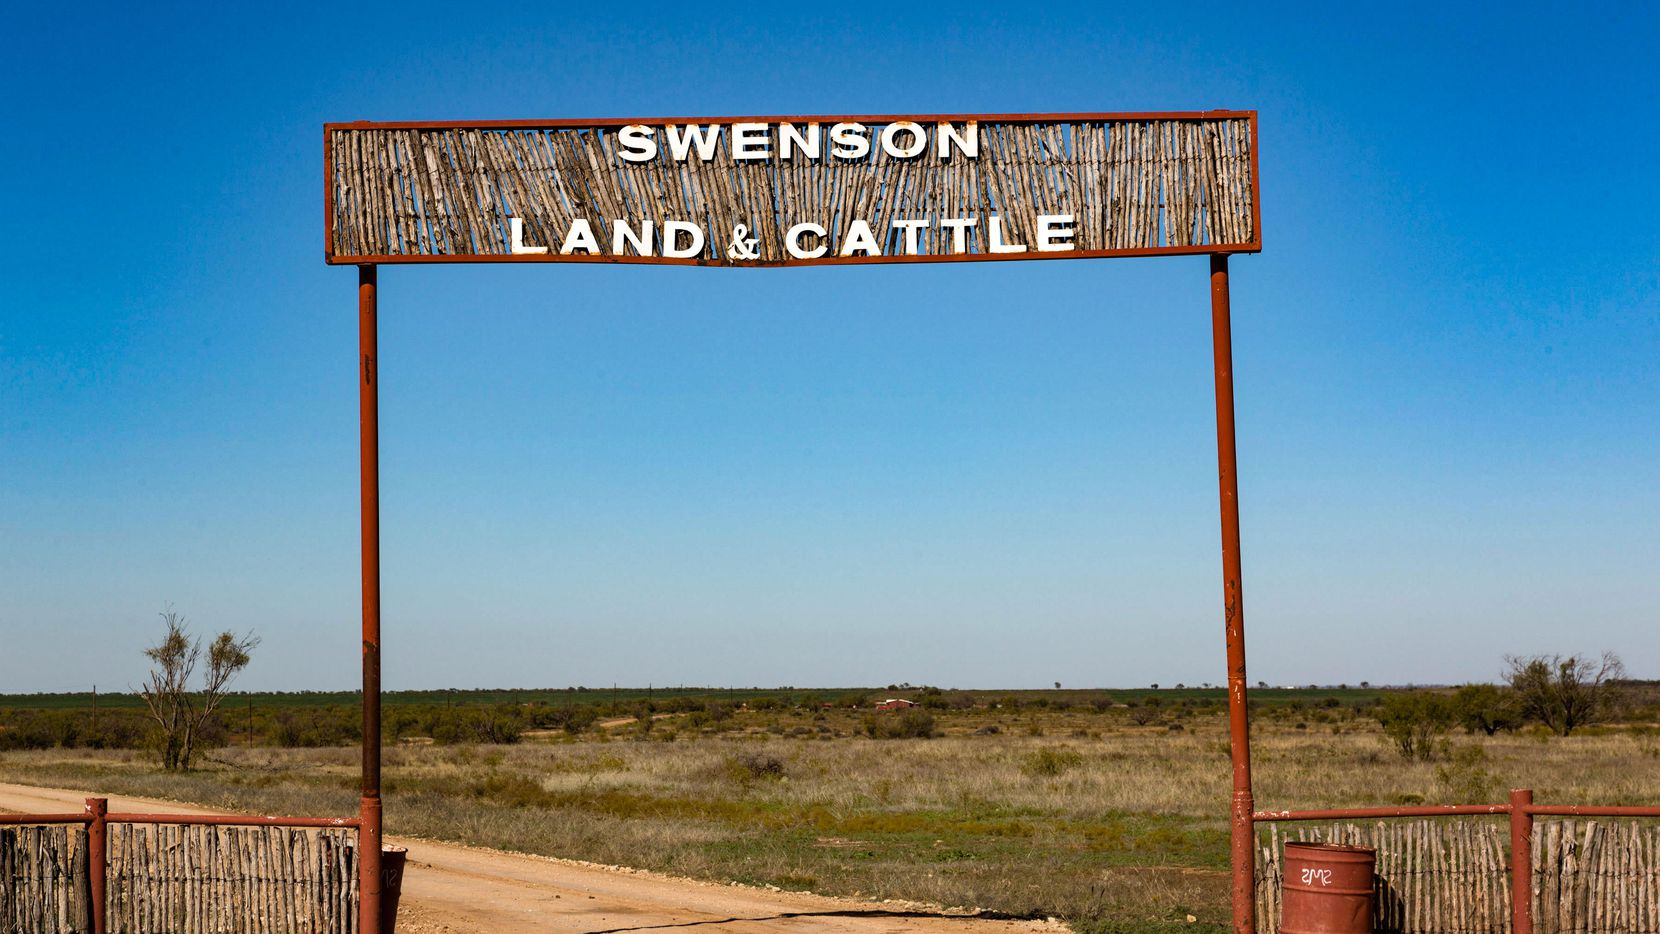 The Swenson Flat Top Ranch is north of Abilene.